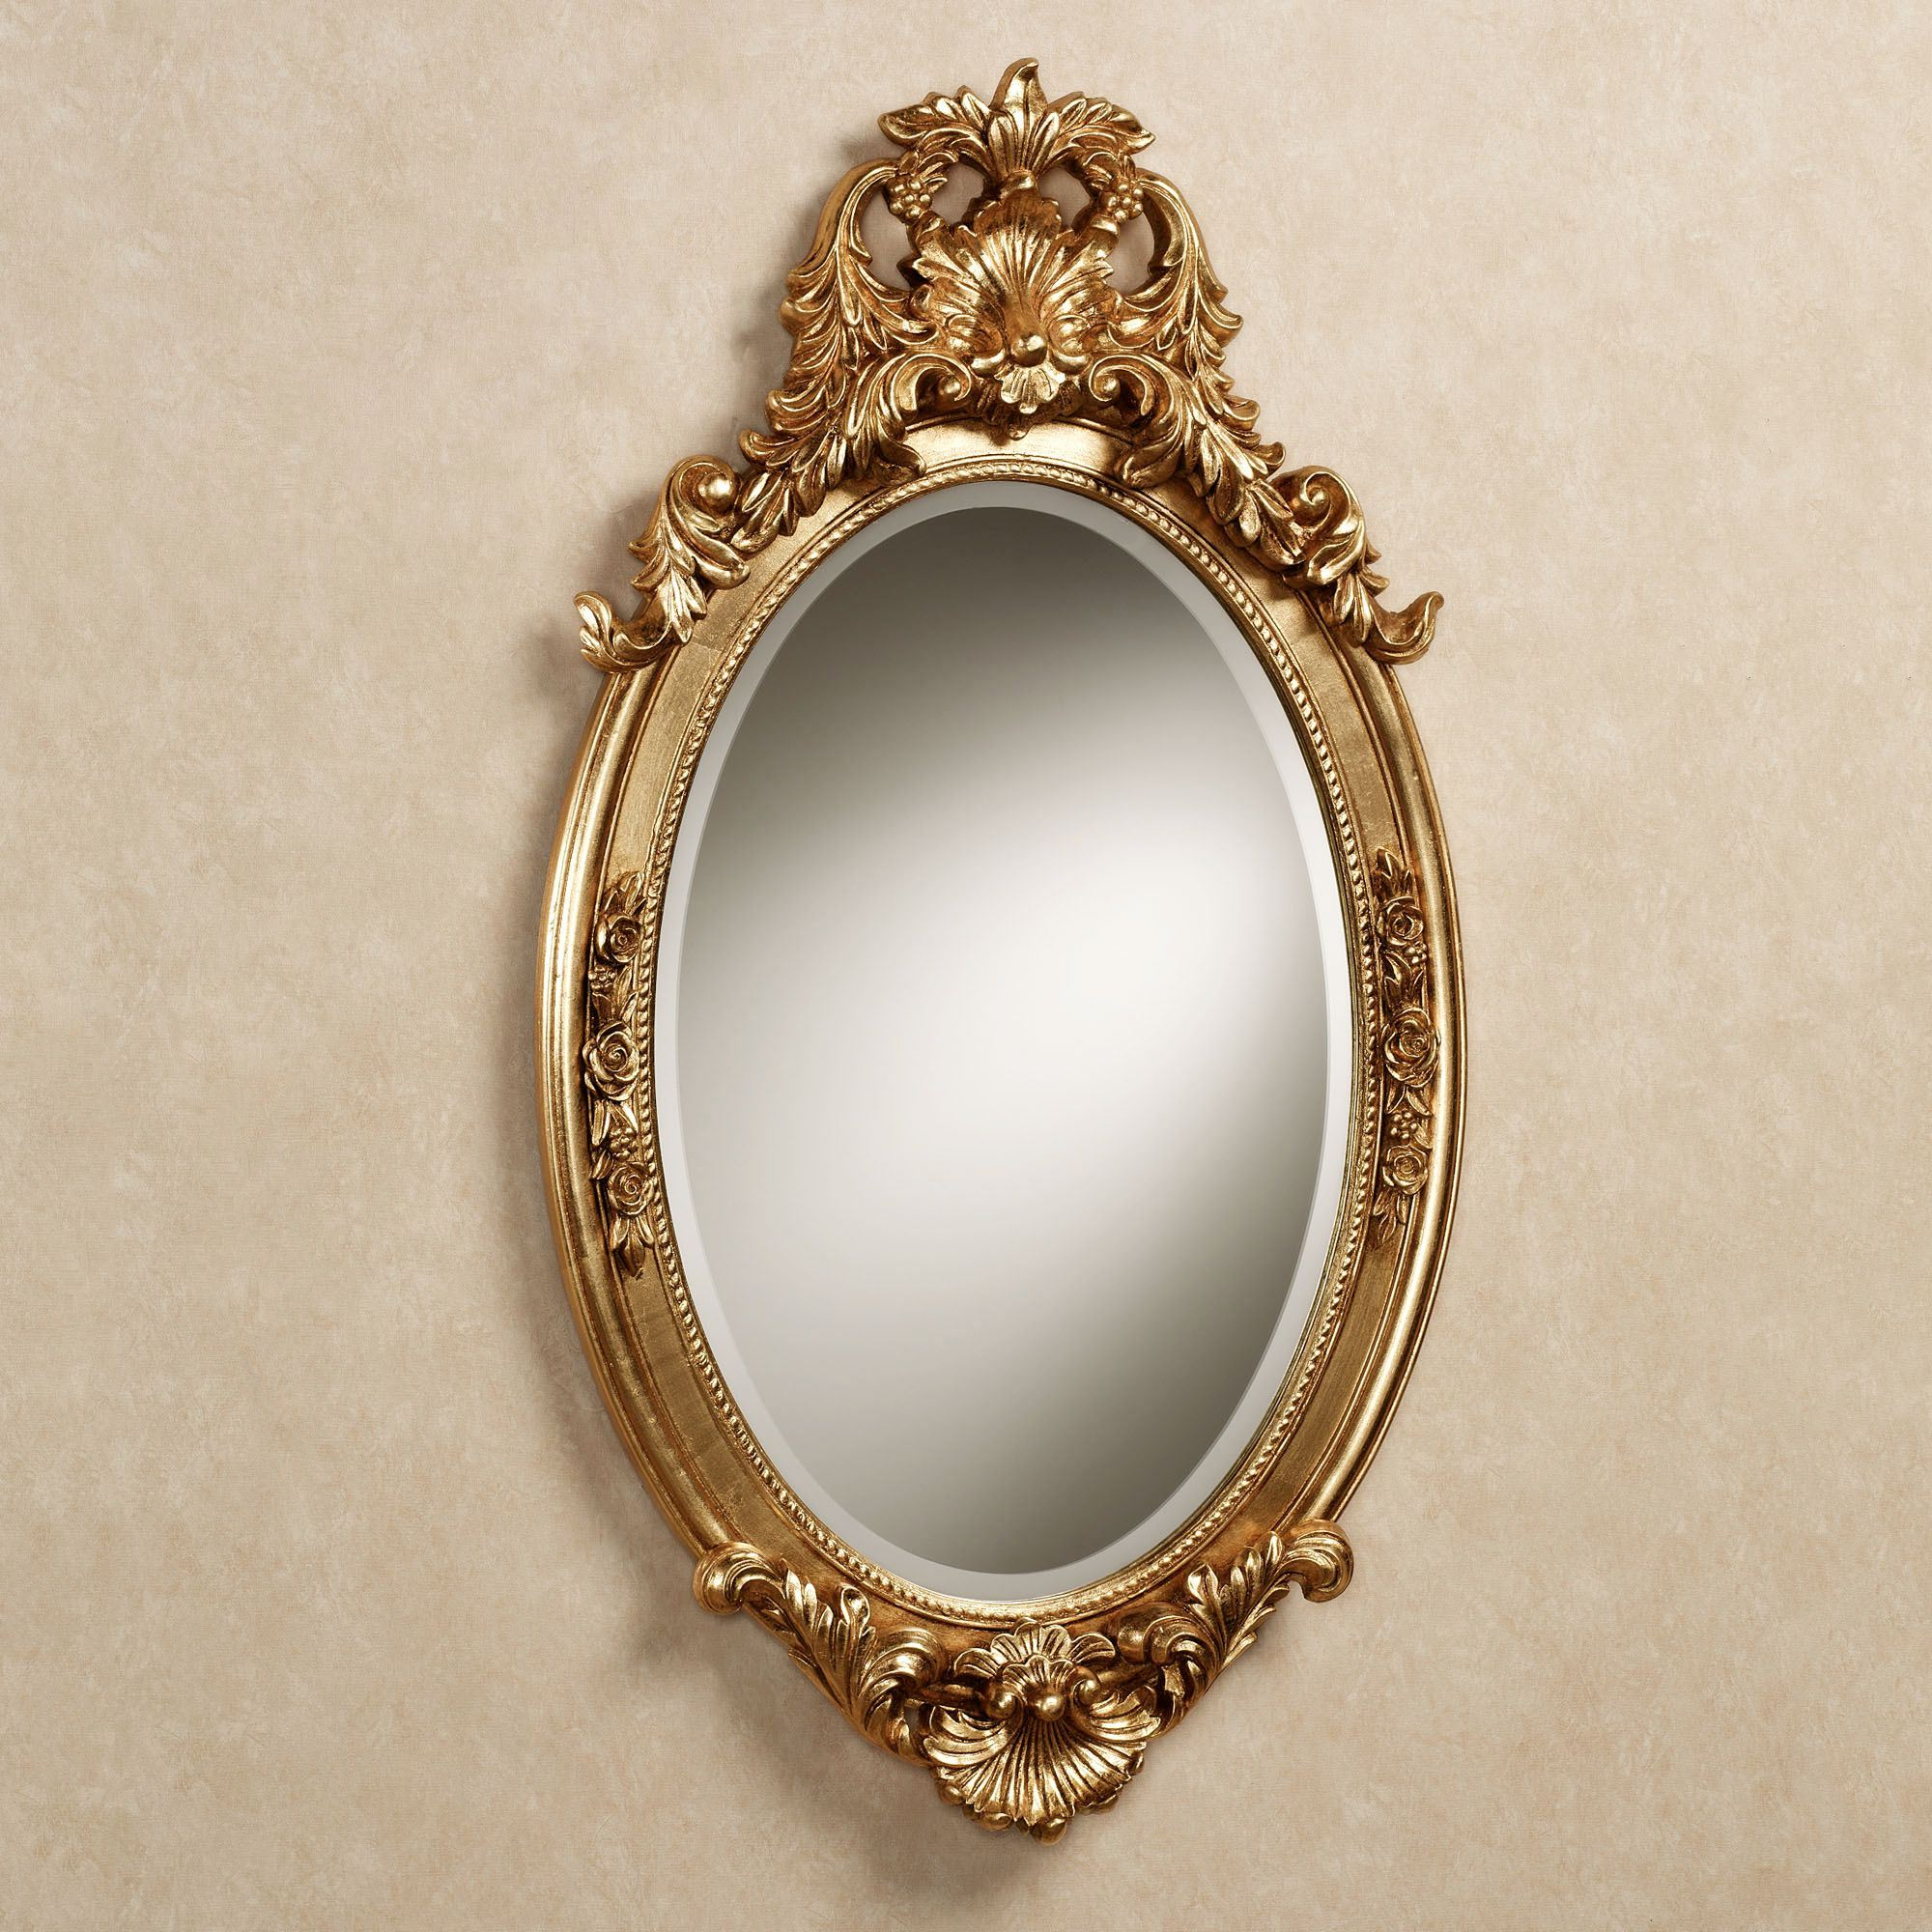 Hallandale Acanthus Leaf Oval Wall Mirror Inside Famous Antique Gold Wall Mirrors (Gallery 6 of 20)